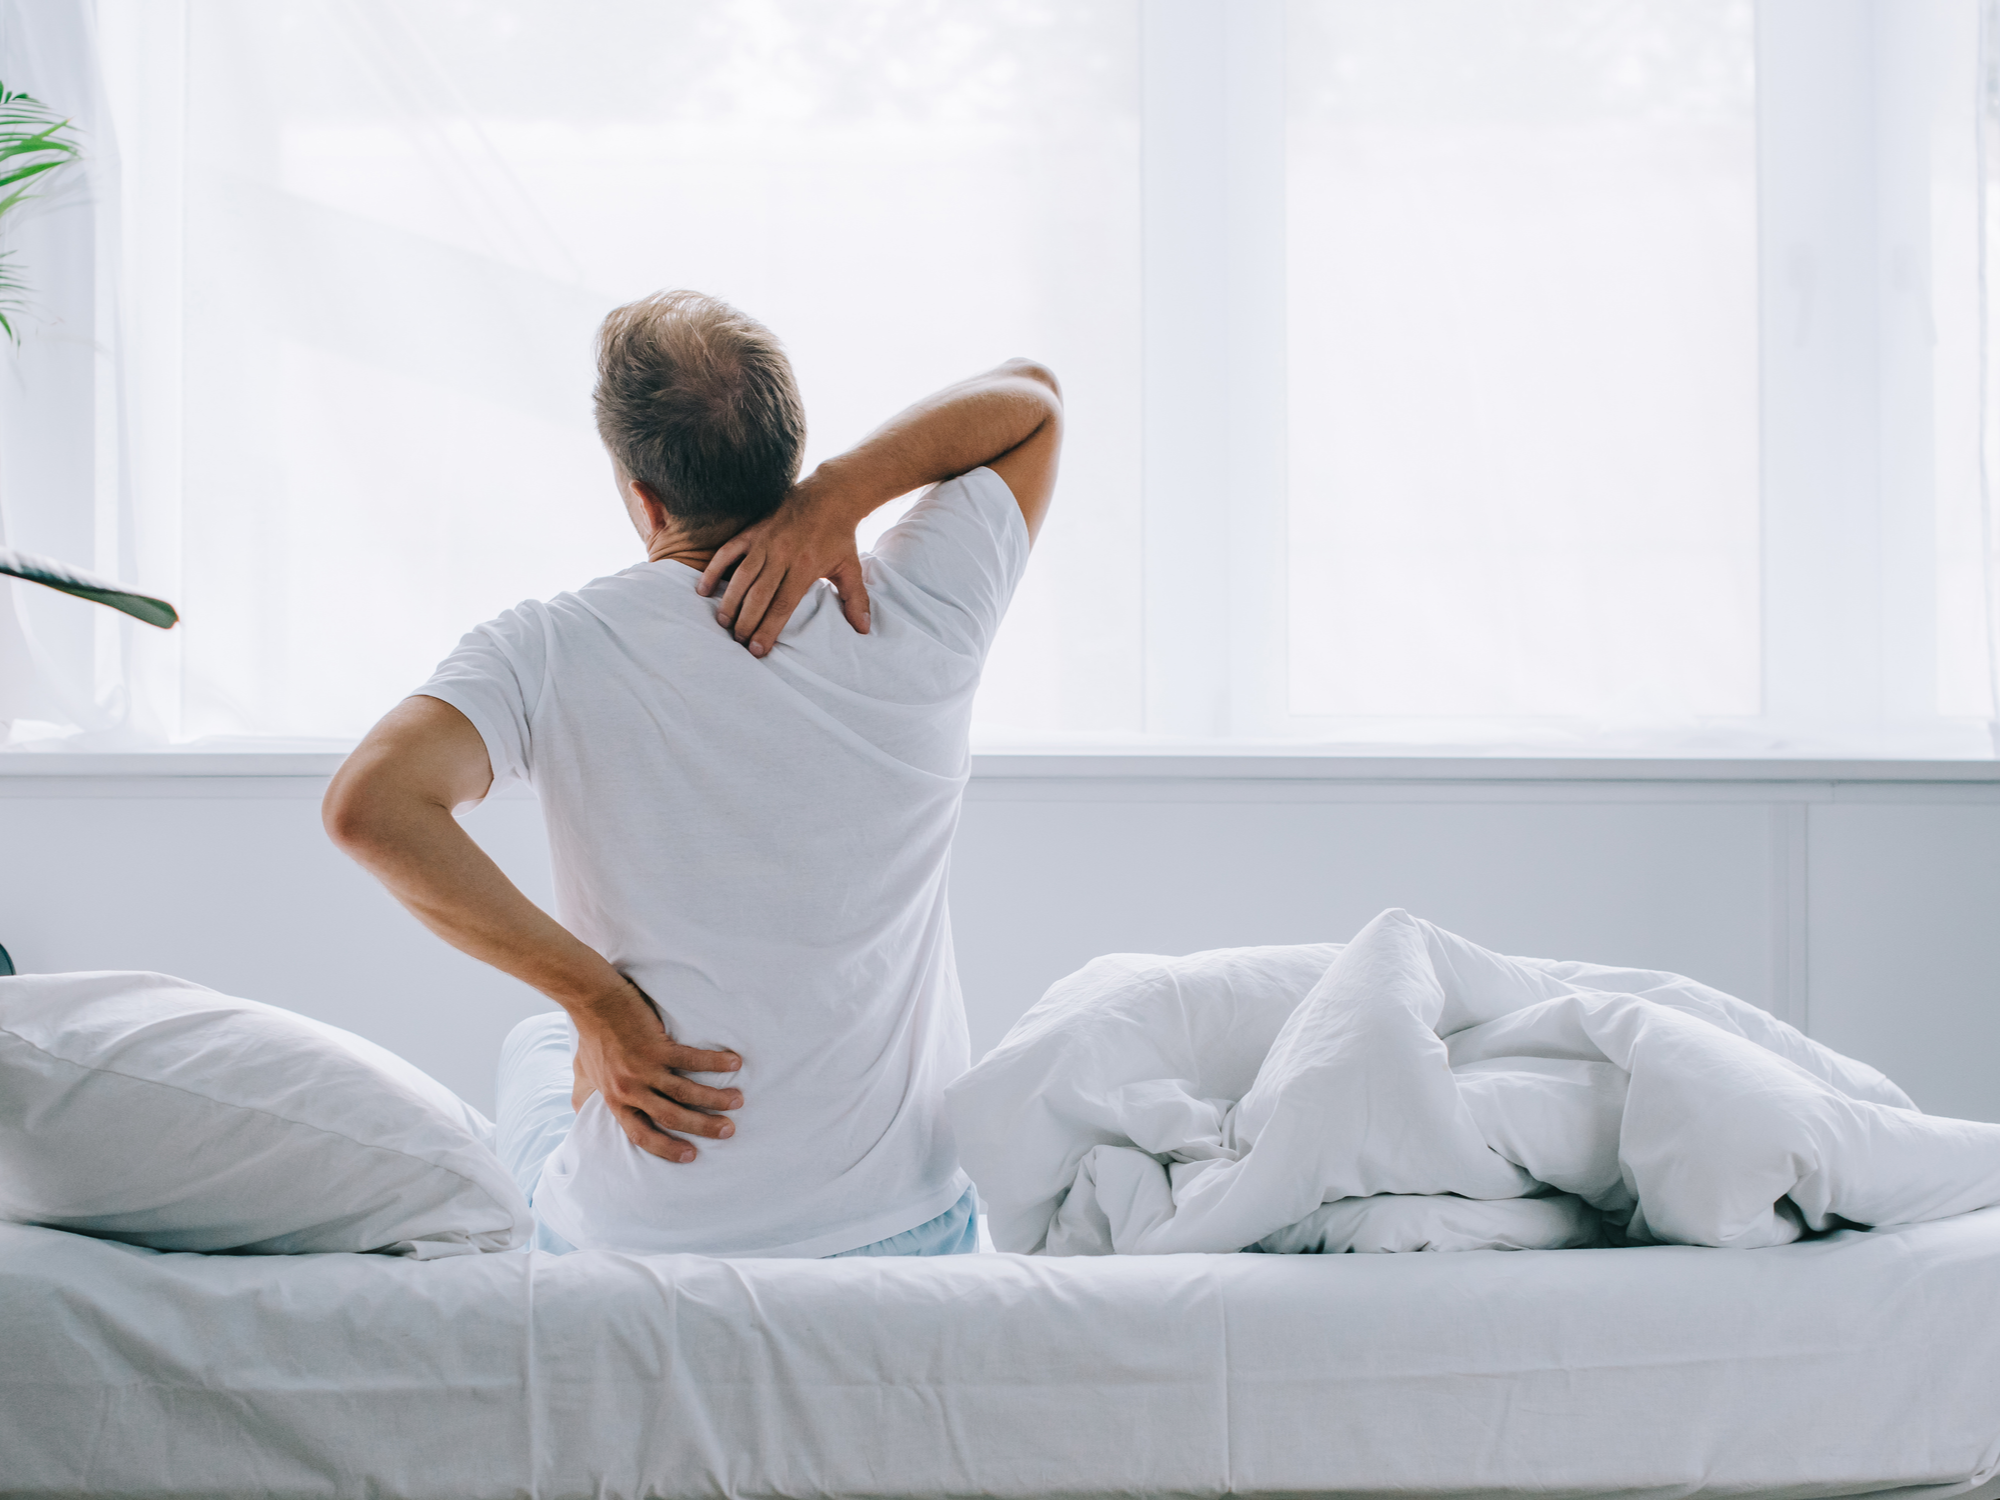 How Spinal Decompression Helps Back Pain